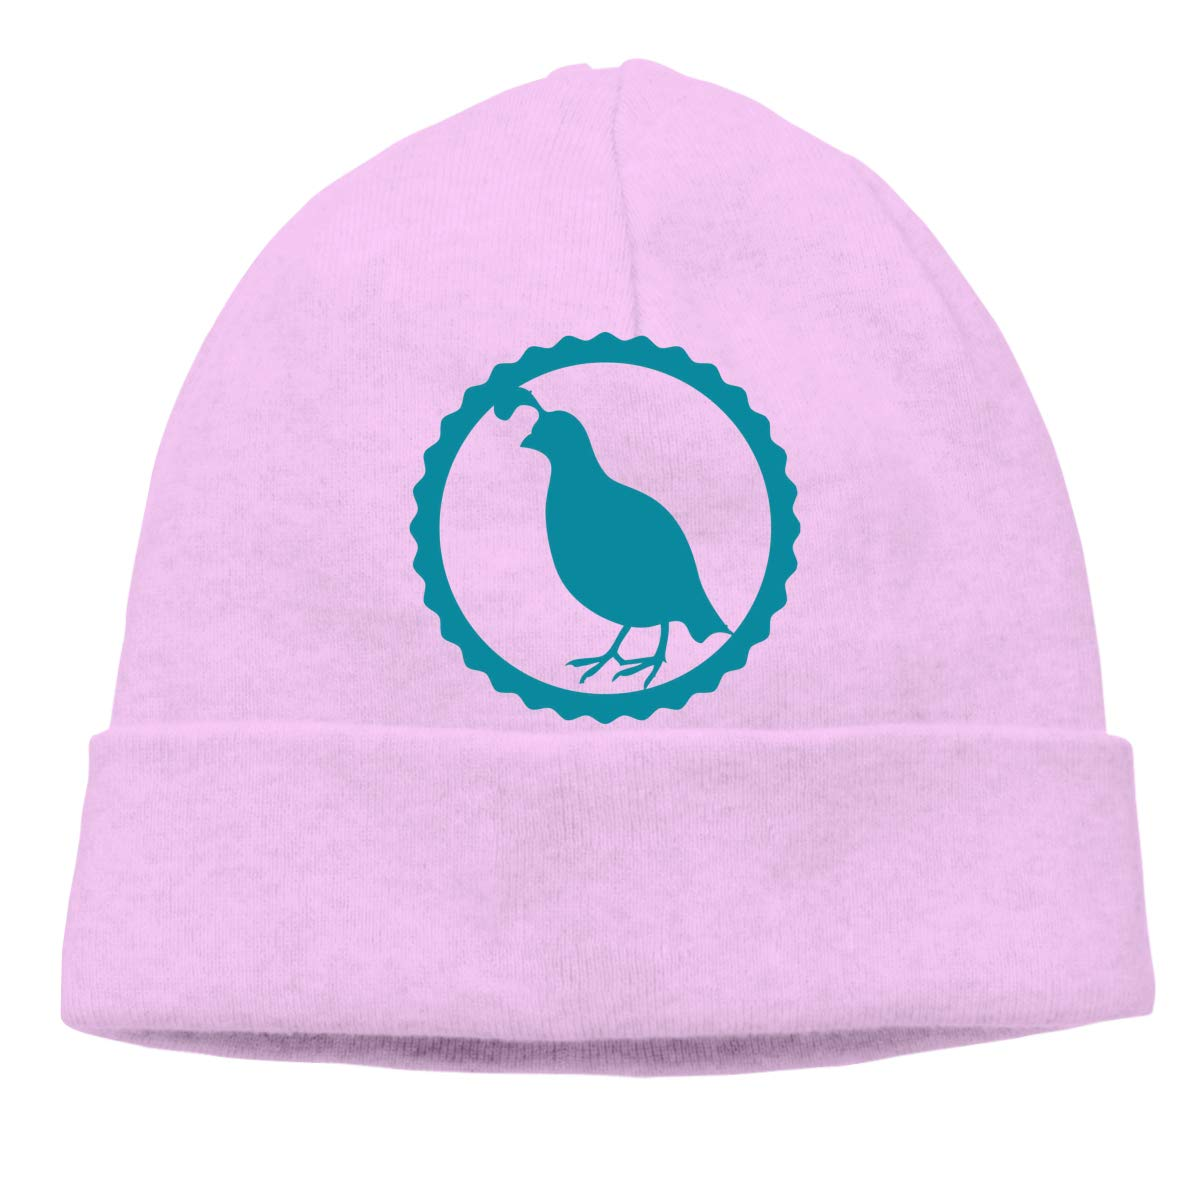 Passover Celebration The Blue Quail Unisex Cuffed Plain Skull Knitted Hat Beanie Cap Men Women Black